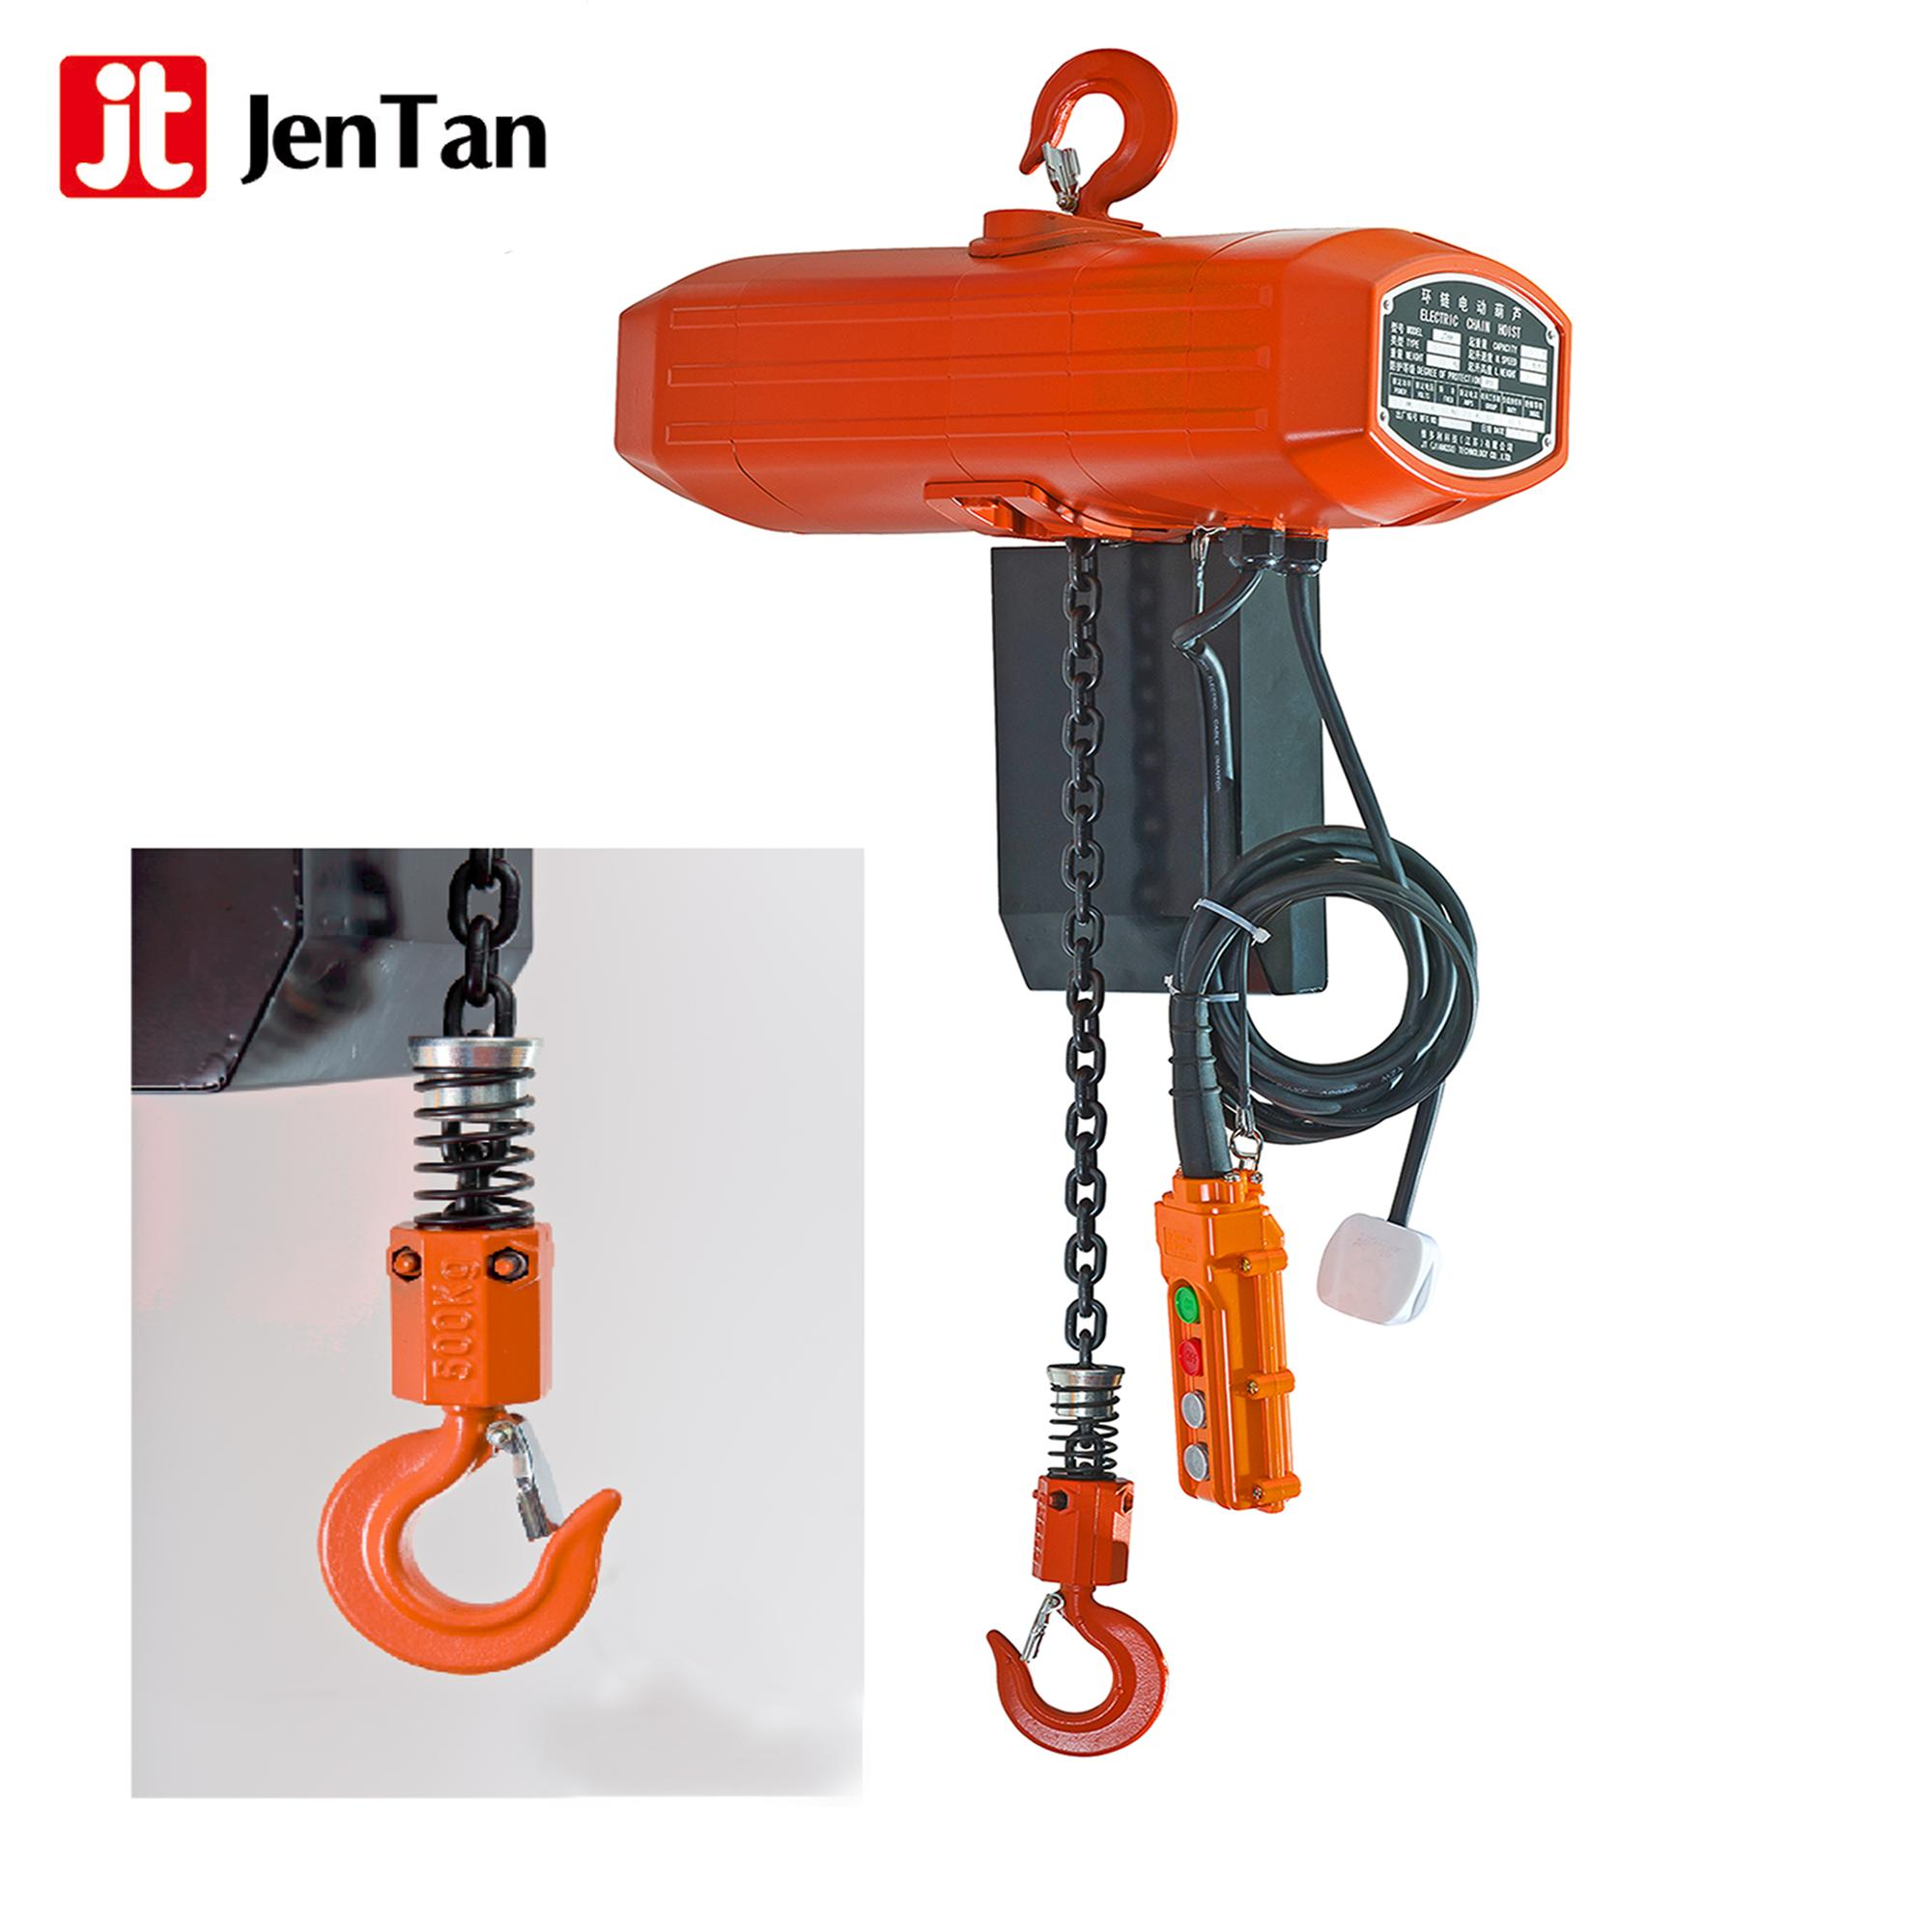 JenTanElectric Chain Hoist, Low Headroom Type used for limited space , New Model Series